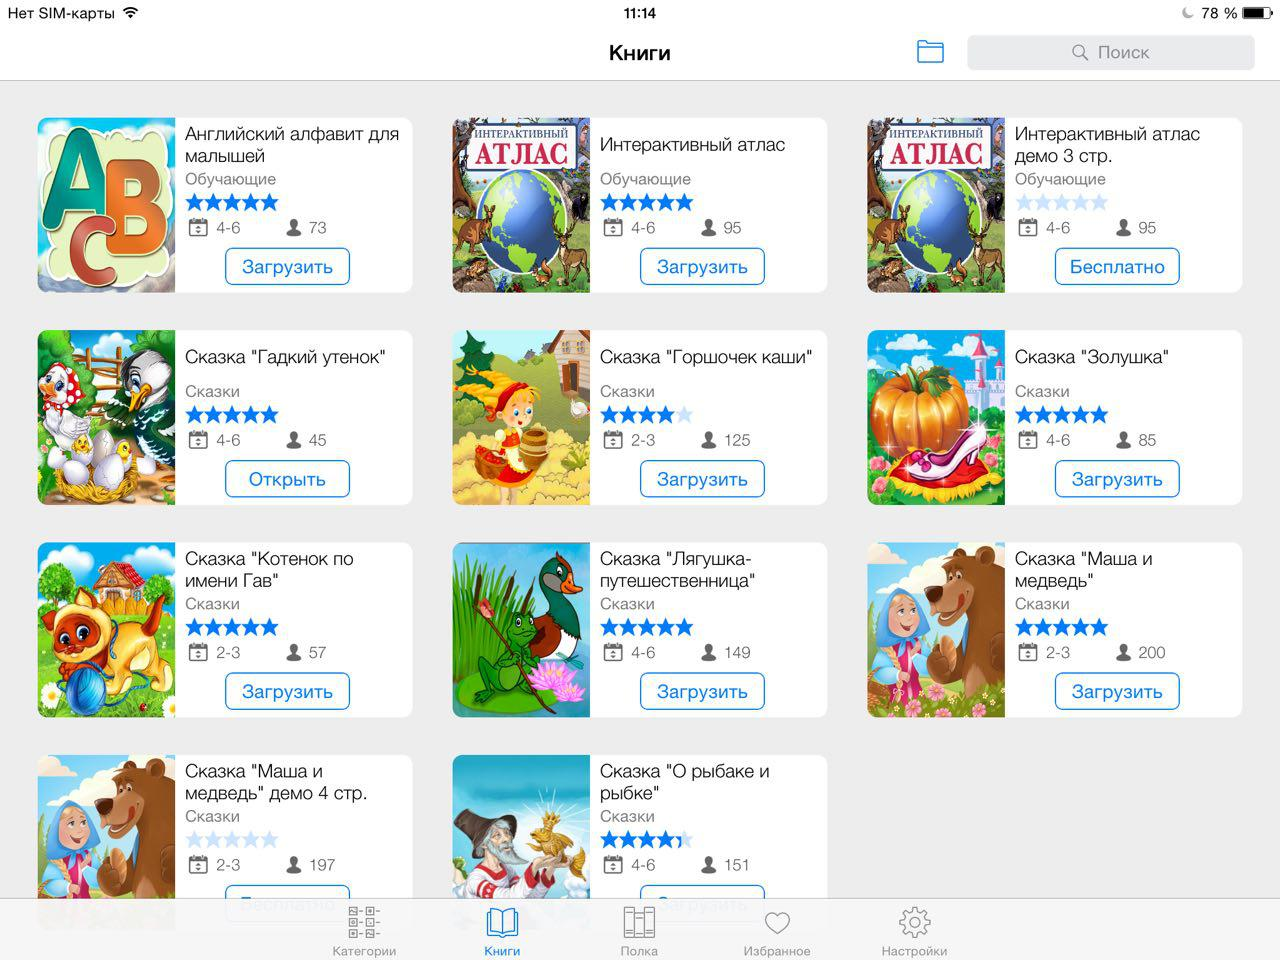 How to make iPad useful for your child? PlayStory pomoget review